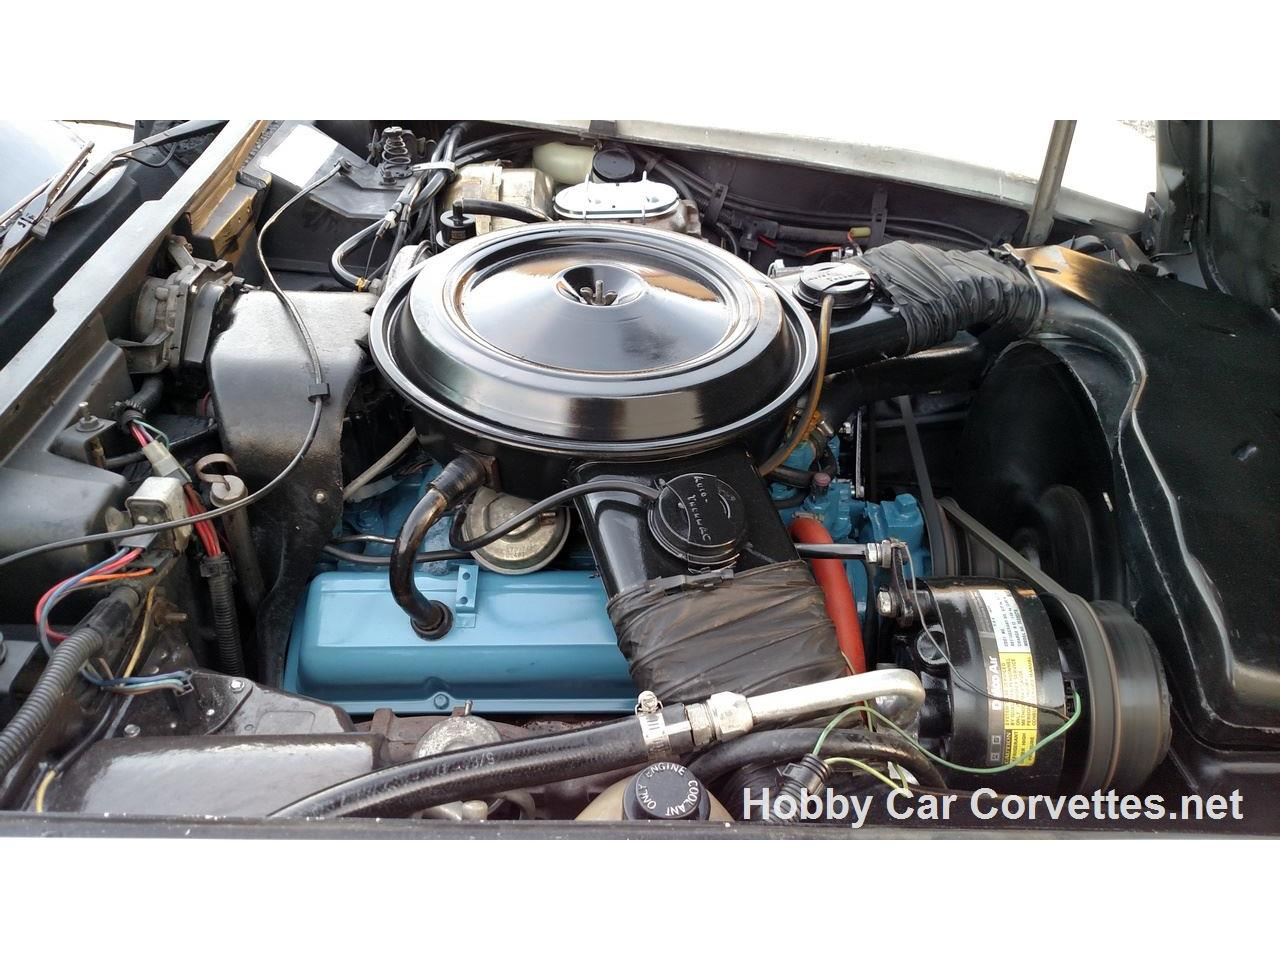 Large Picture of 1979 Corvette located in Pennsylvania - $14,999.00 Offered by Hobby Car Corvettes - KMMI